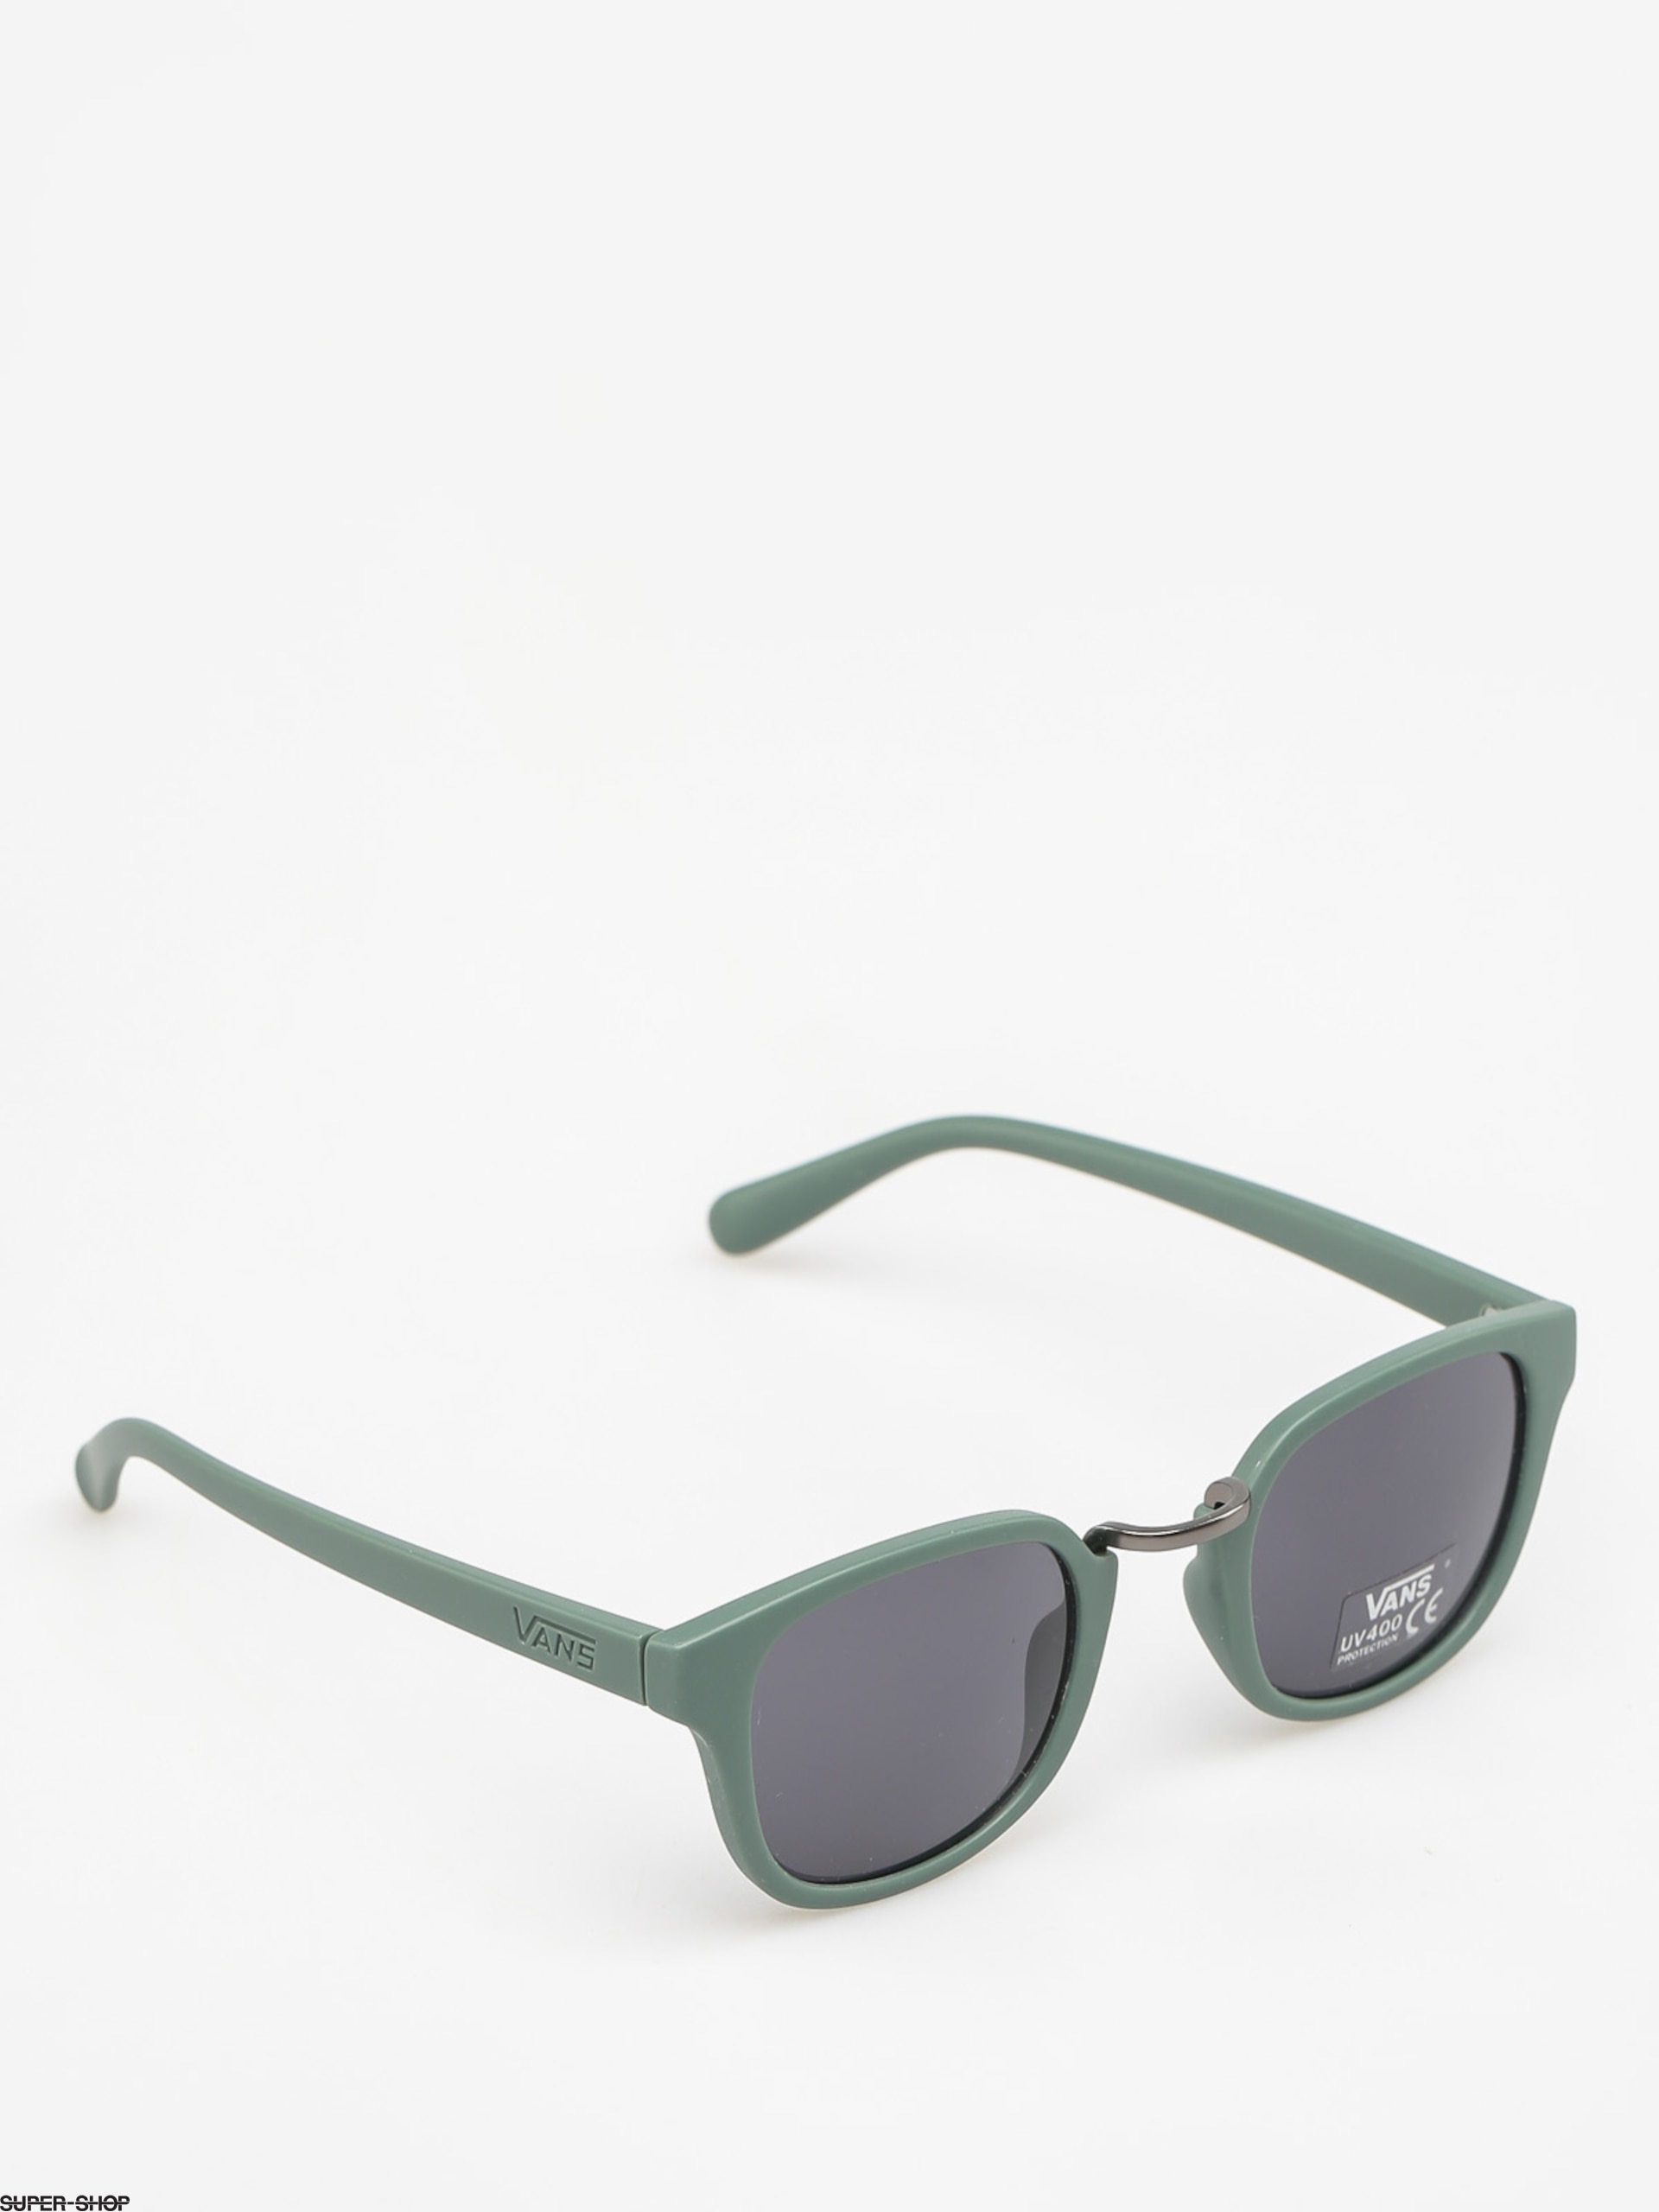 Vans Sonnenbrille Carvey Shades (dark/forest)